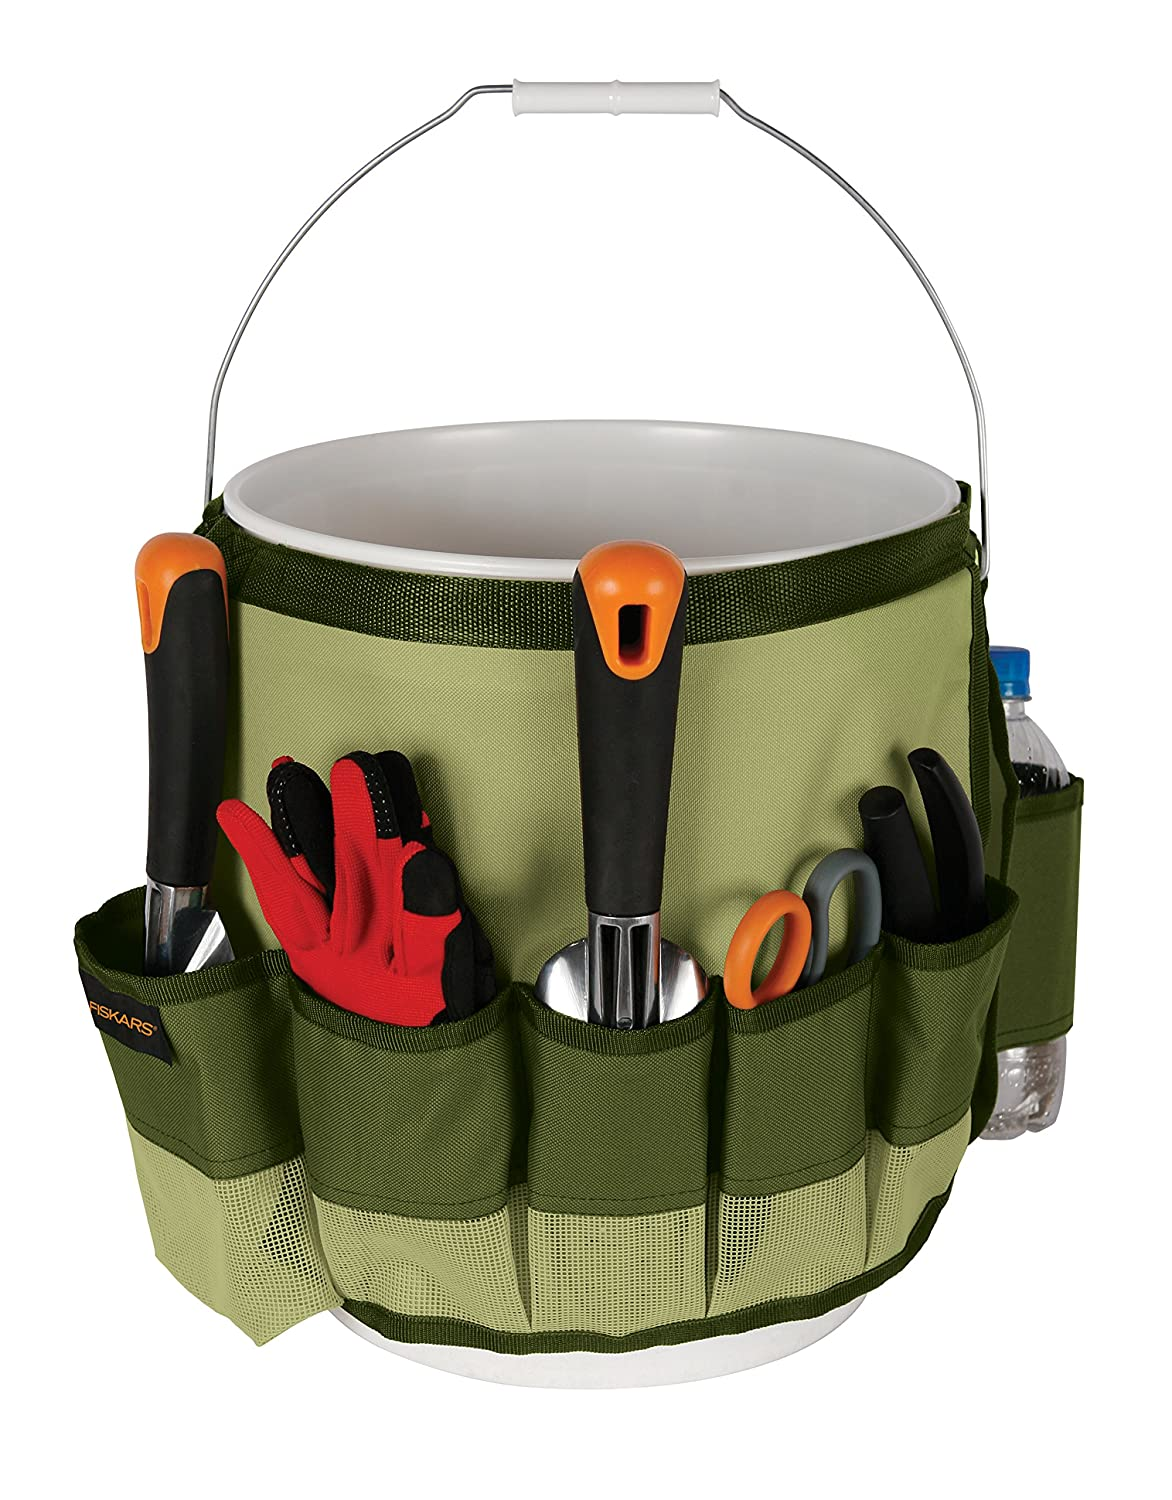 Amazon.com : Fiskars Garden Bucket Caddy, Bucket Not Included (9424) :  Gardening Tool Holders : Garden U0026 Outdoor